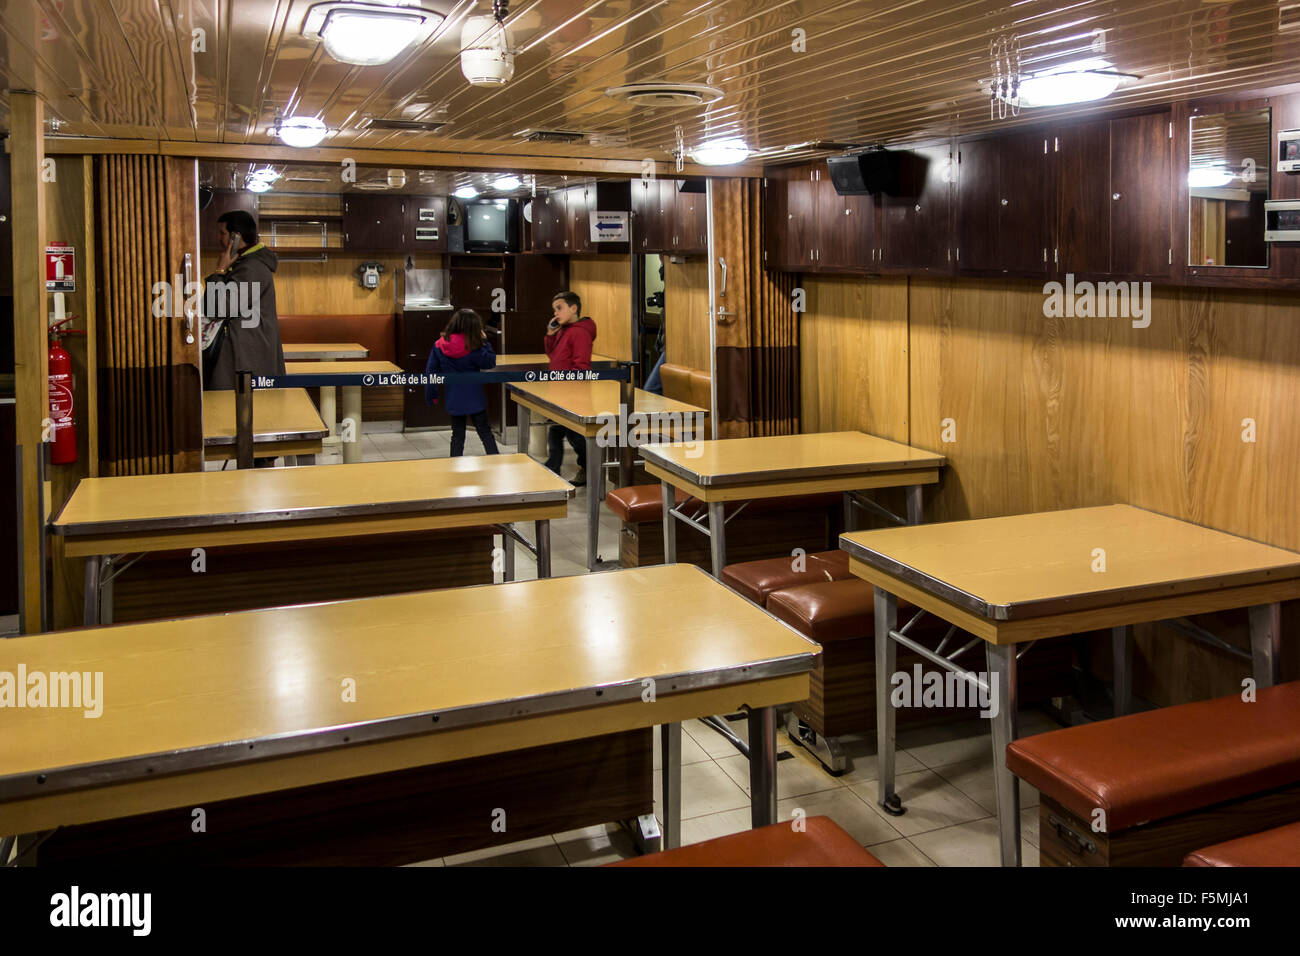 Refectory / mess aboard the Redoutable, first French Navy SSBN ballistic missile submarine, Cité de la Mer, - Stock Image